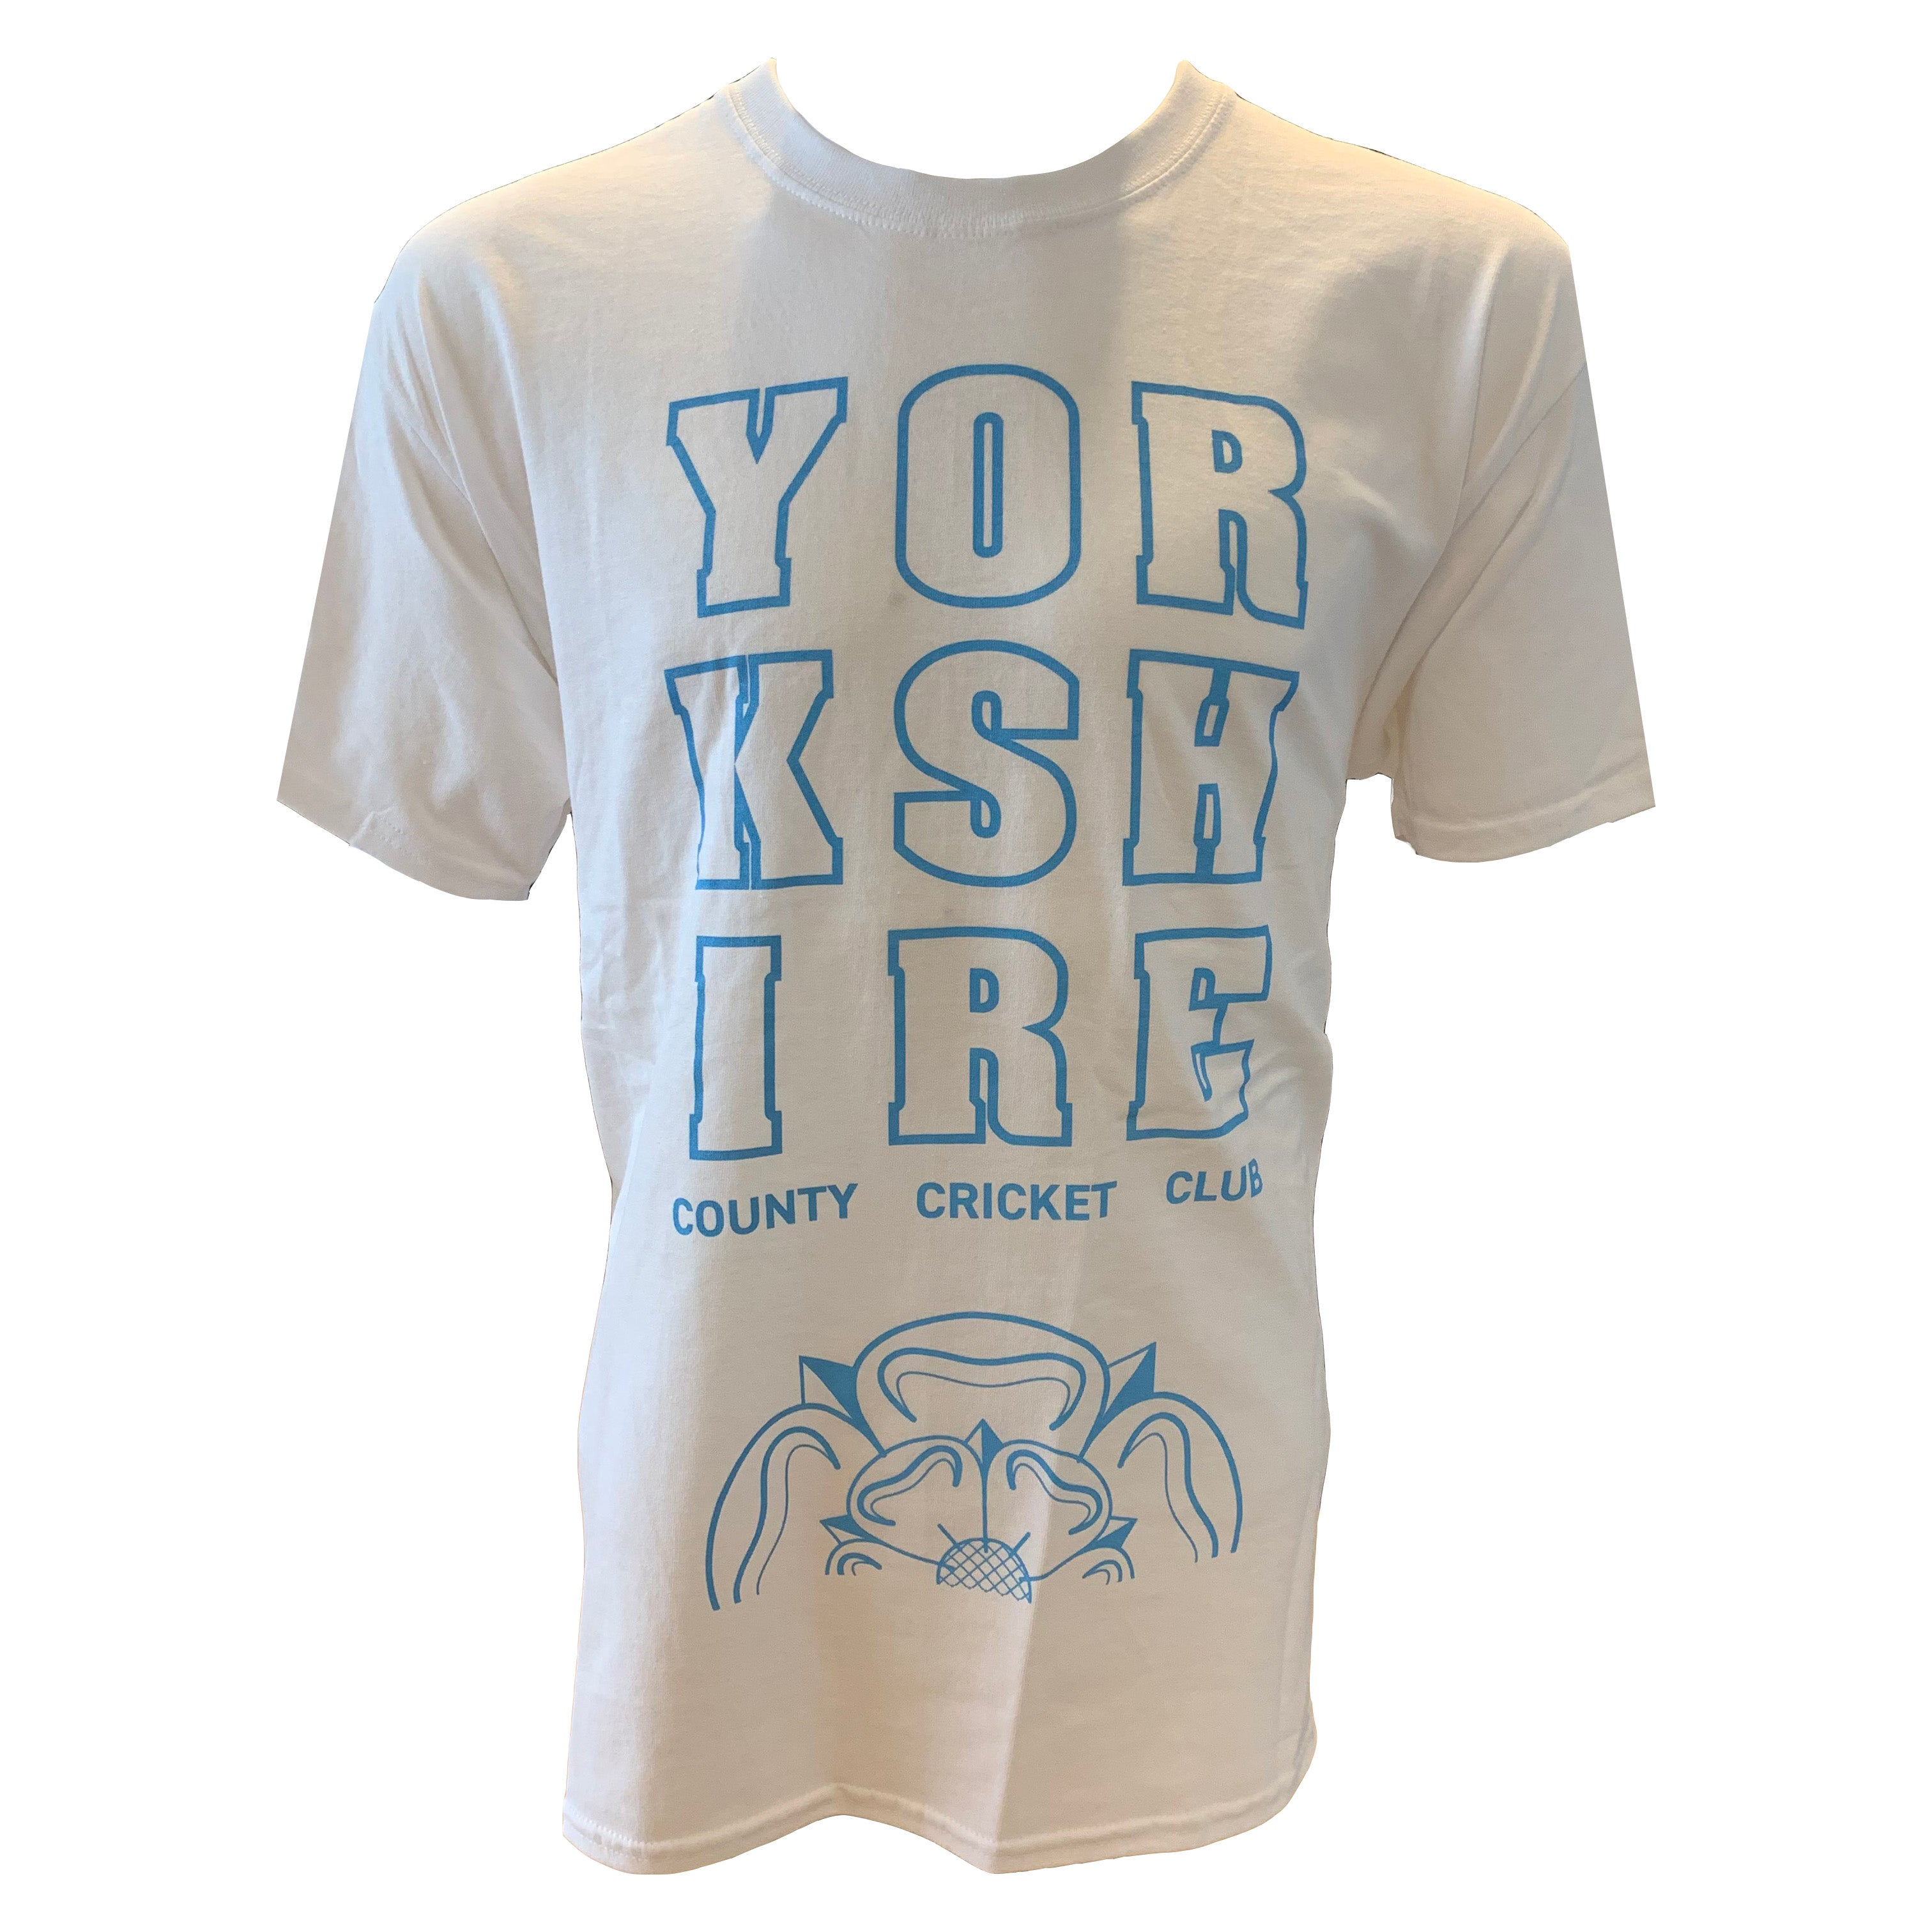 Yorkshire Rose Tee